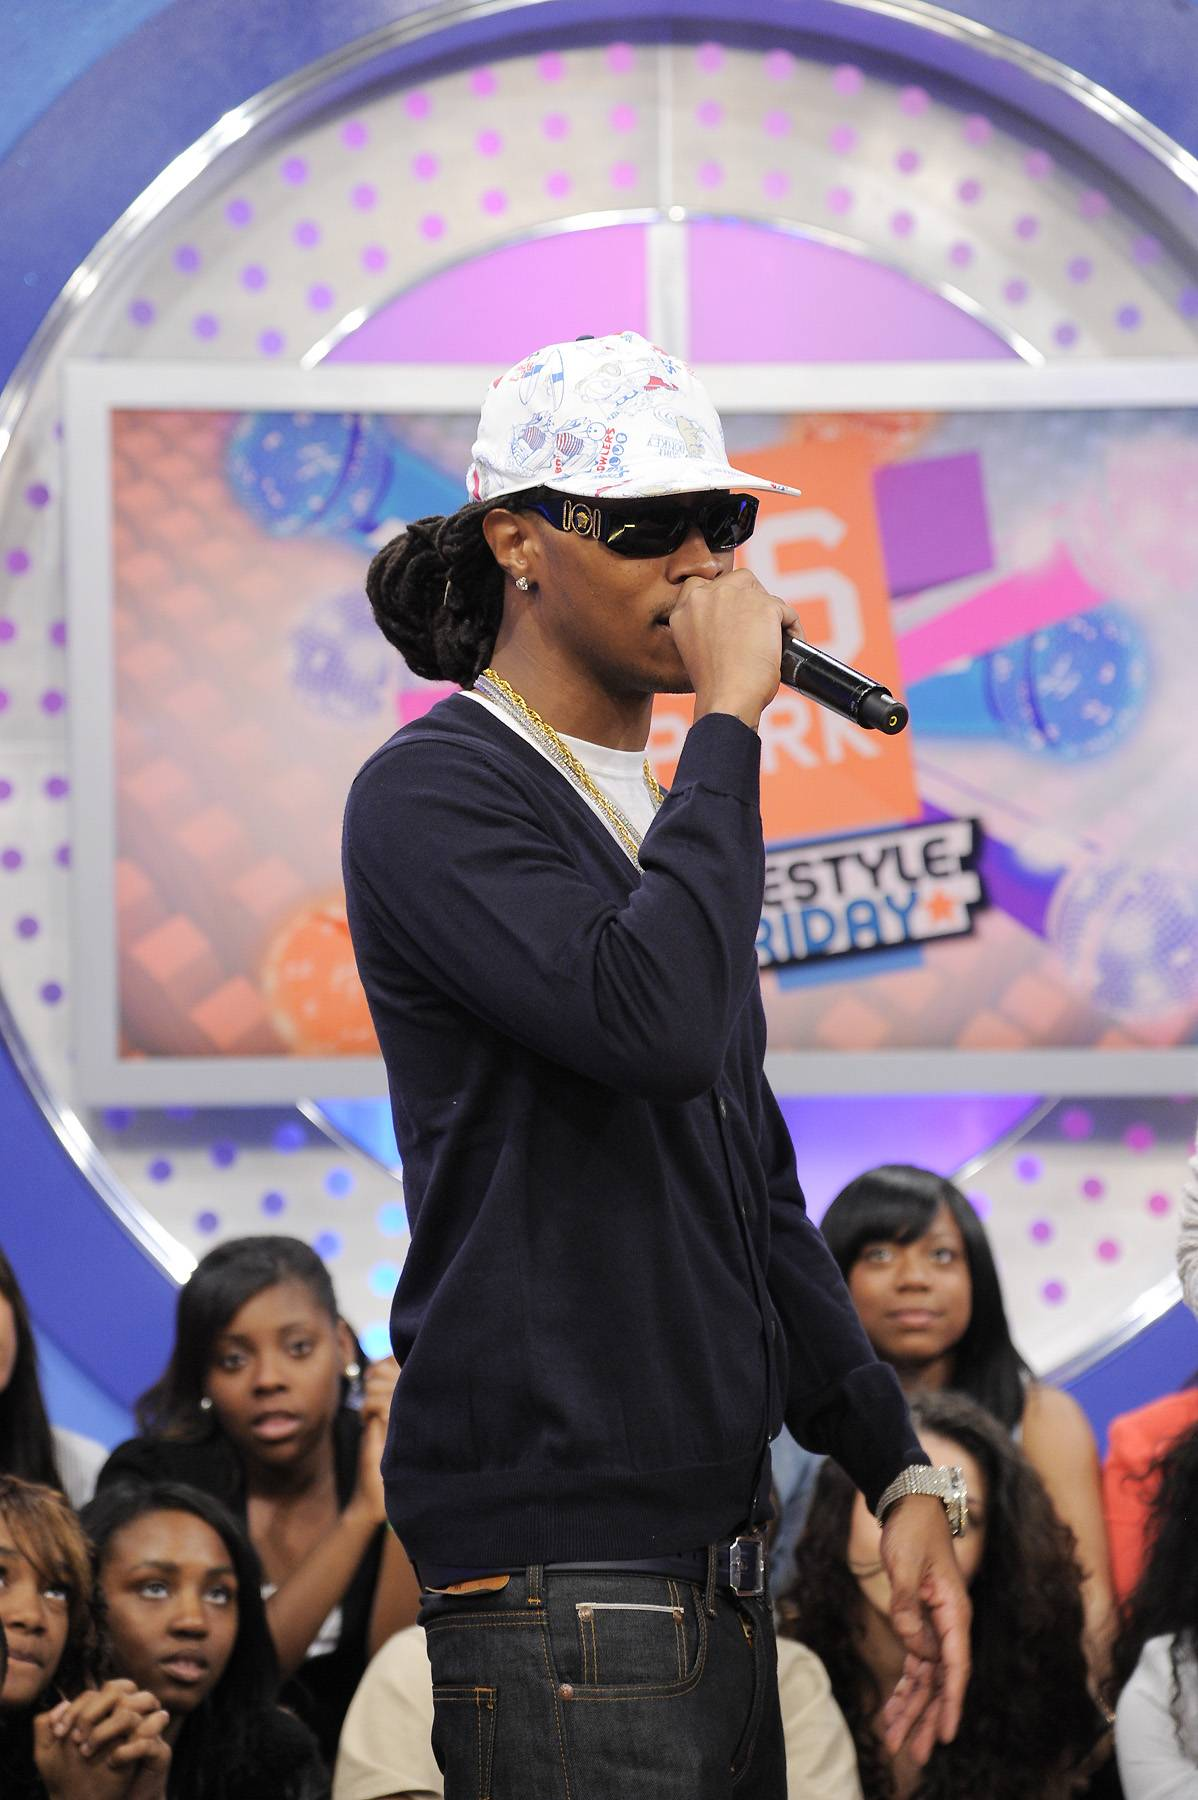 What Does the Future Hold for Future? - Future at 106 & Park, April 6, 2012. (photo: John Ricard / BET)